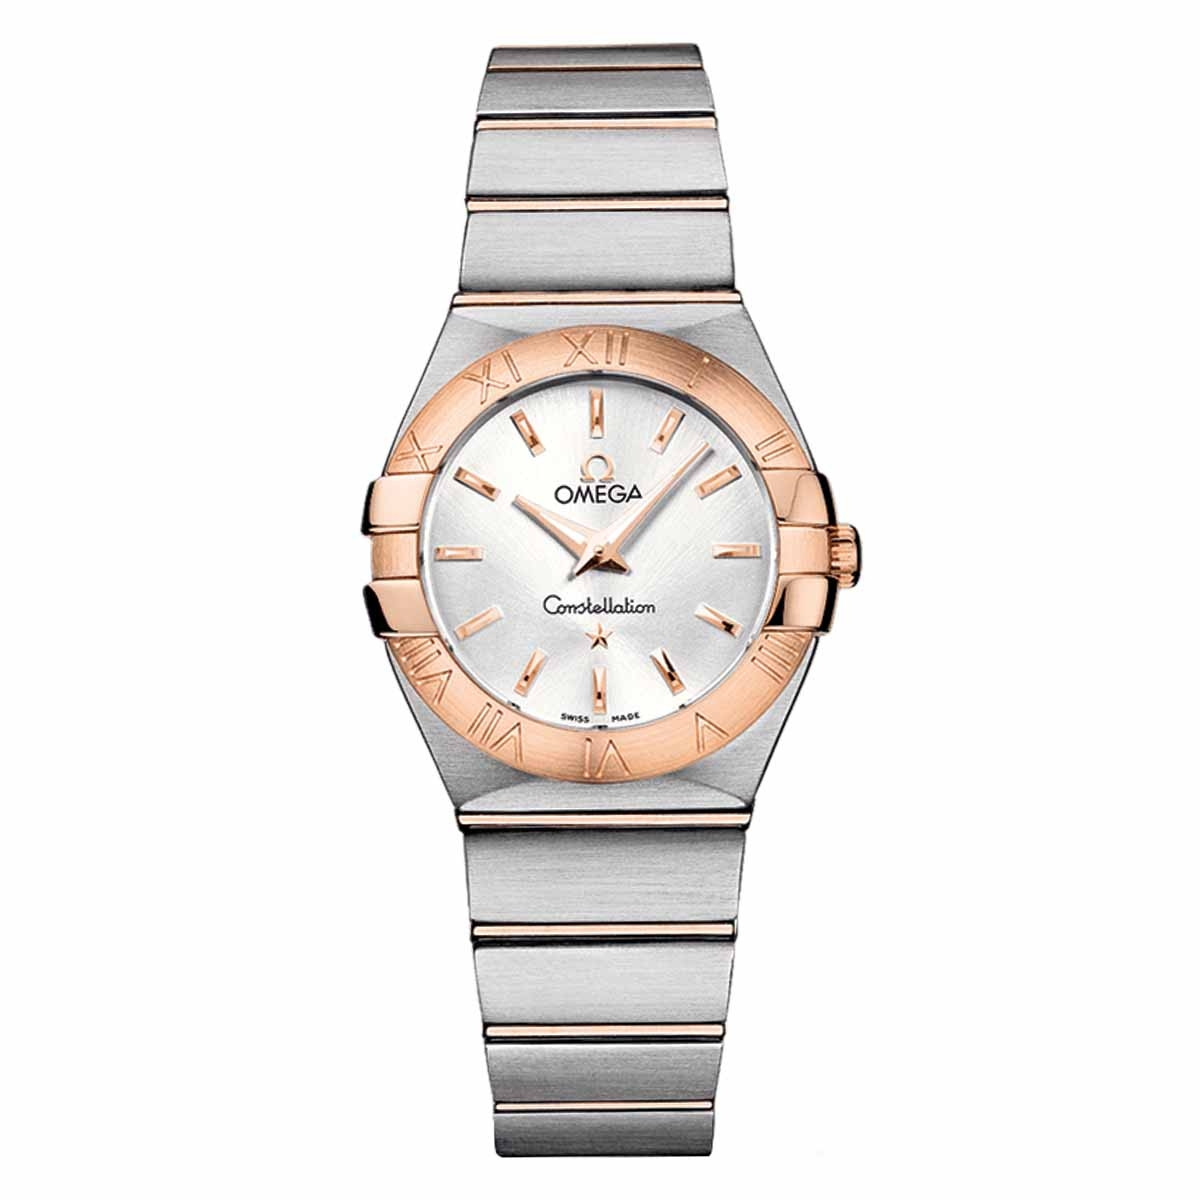 New Woman's Omega Constellation